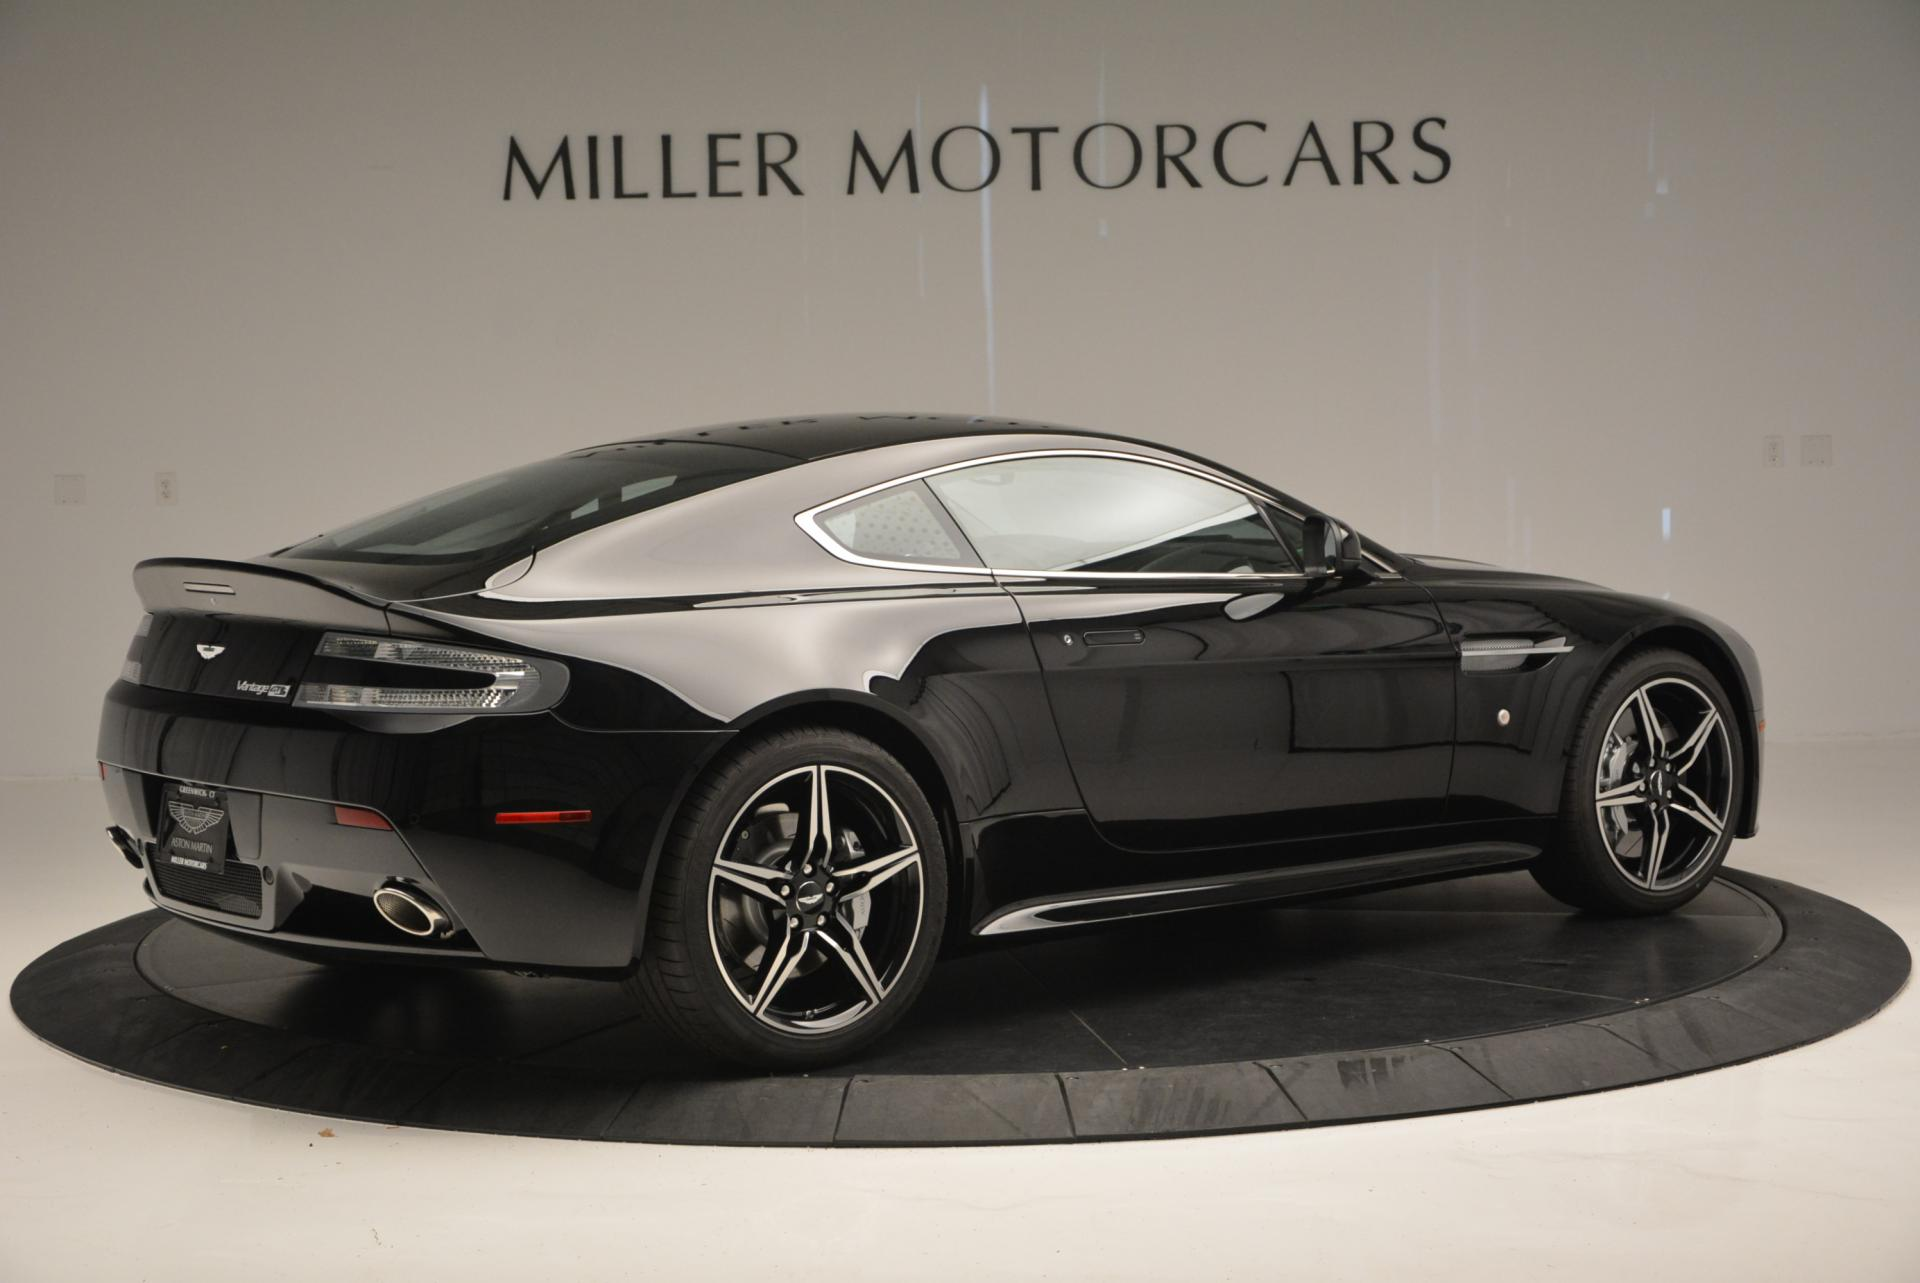 New 2016 Aston Martin V8 Vantage GTS S For Sale In Westport, CT 526_p7